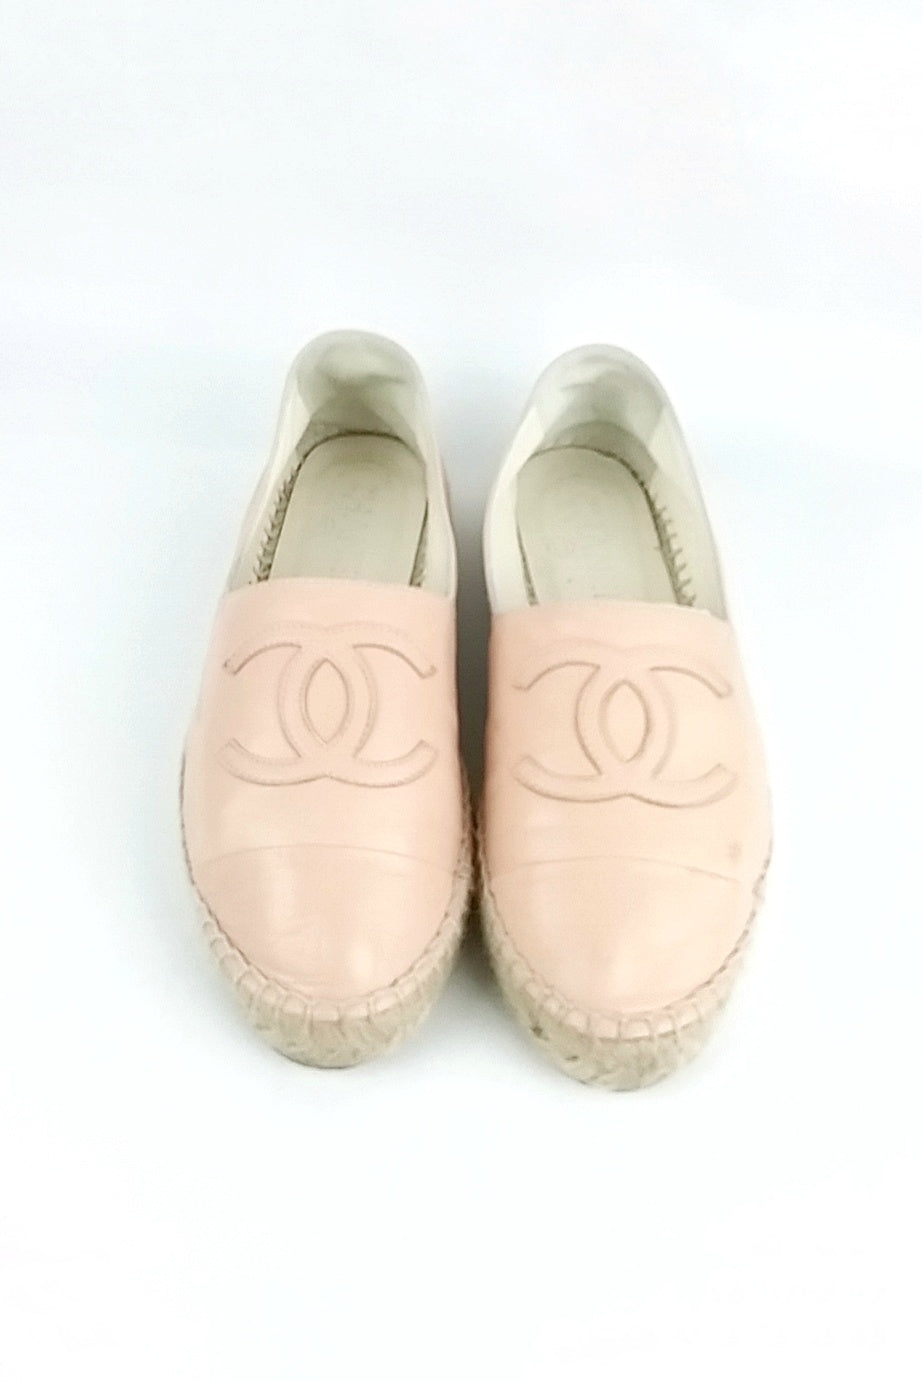 Pastel Pink Leather Espadrilles - ON LAYAWAY